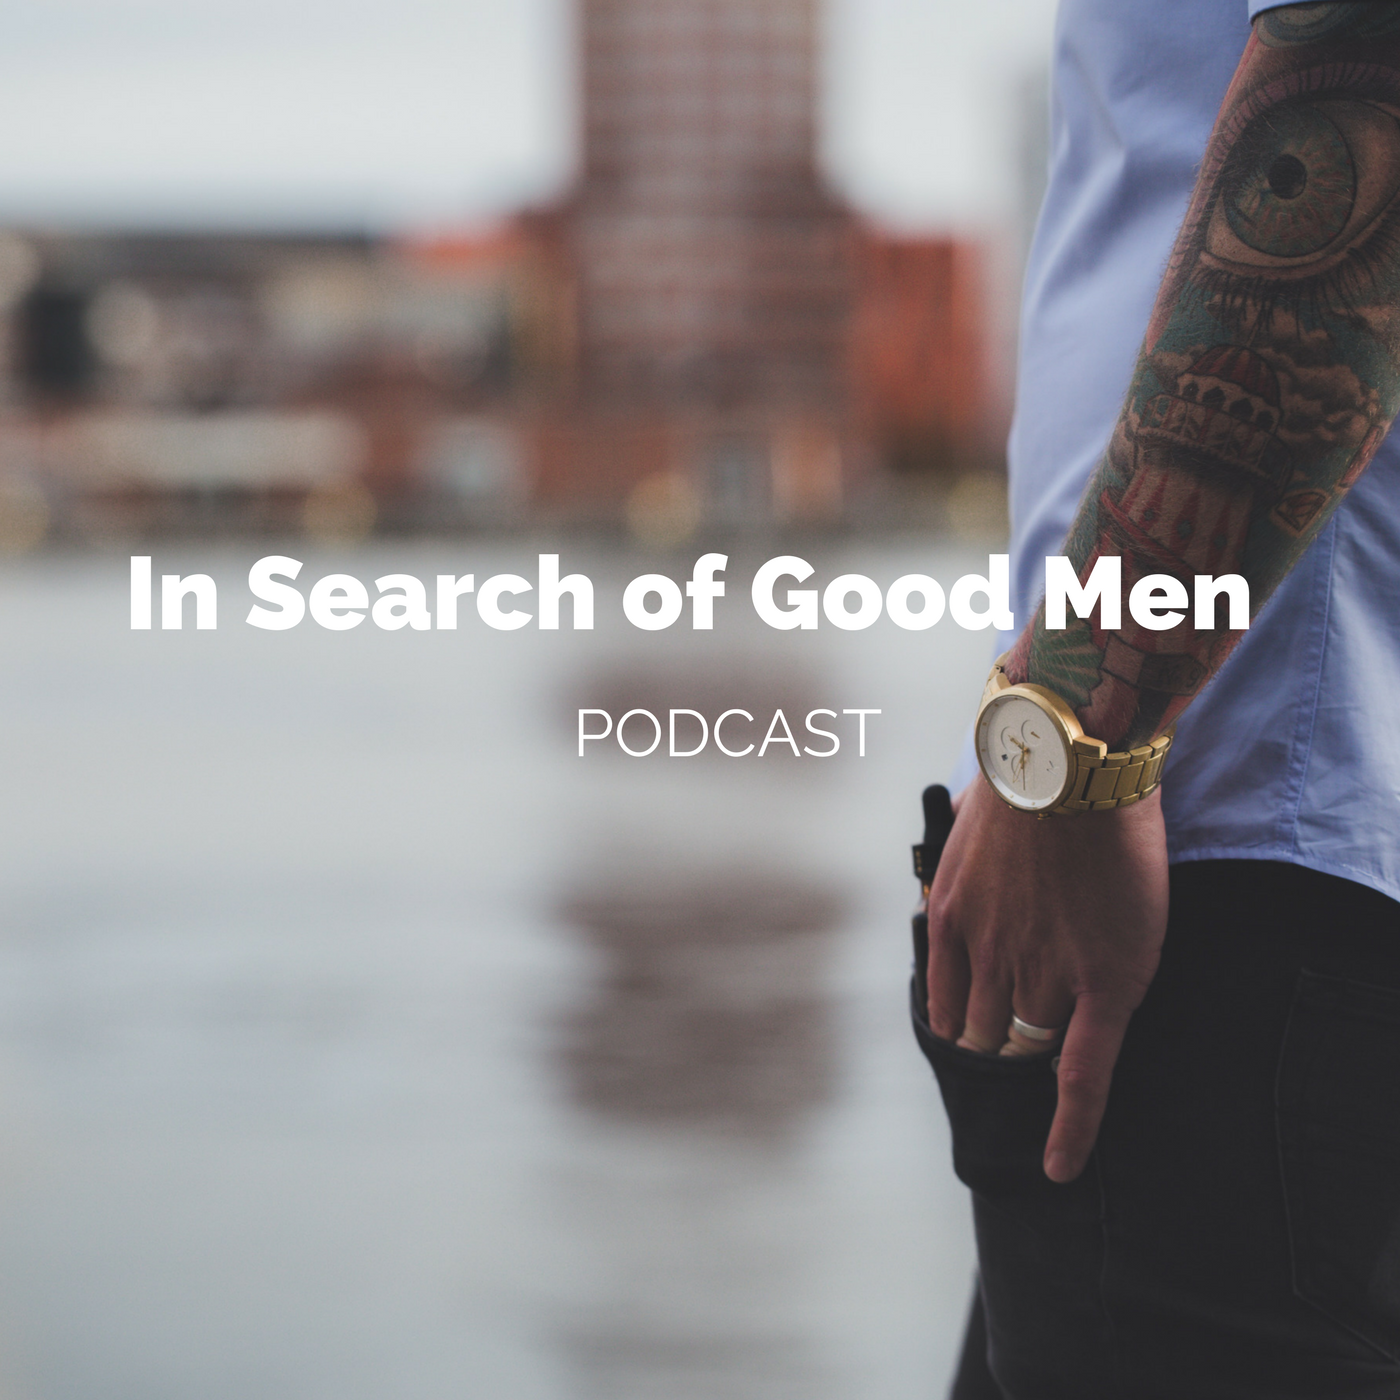 In Search of Good Men Podcast show art